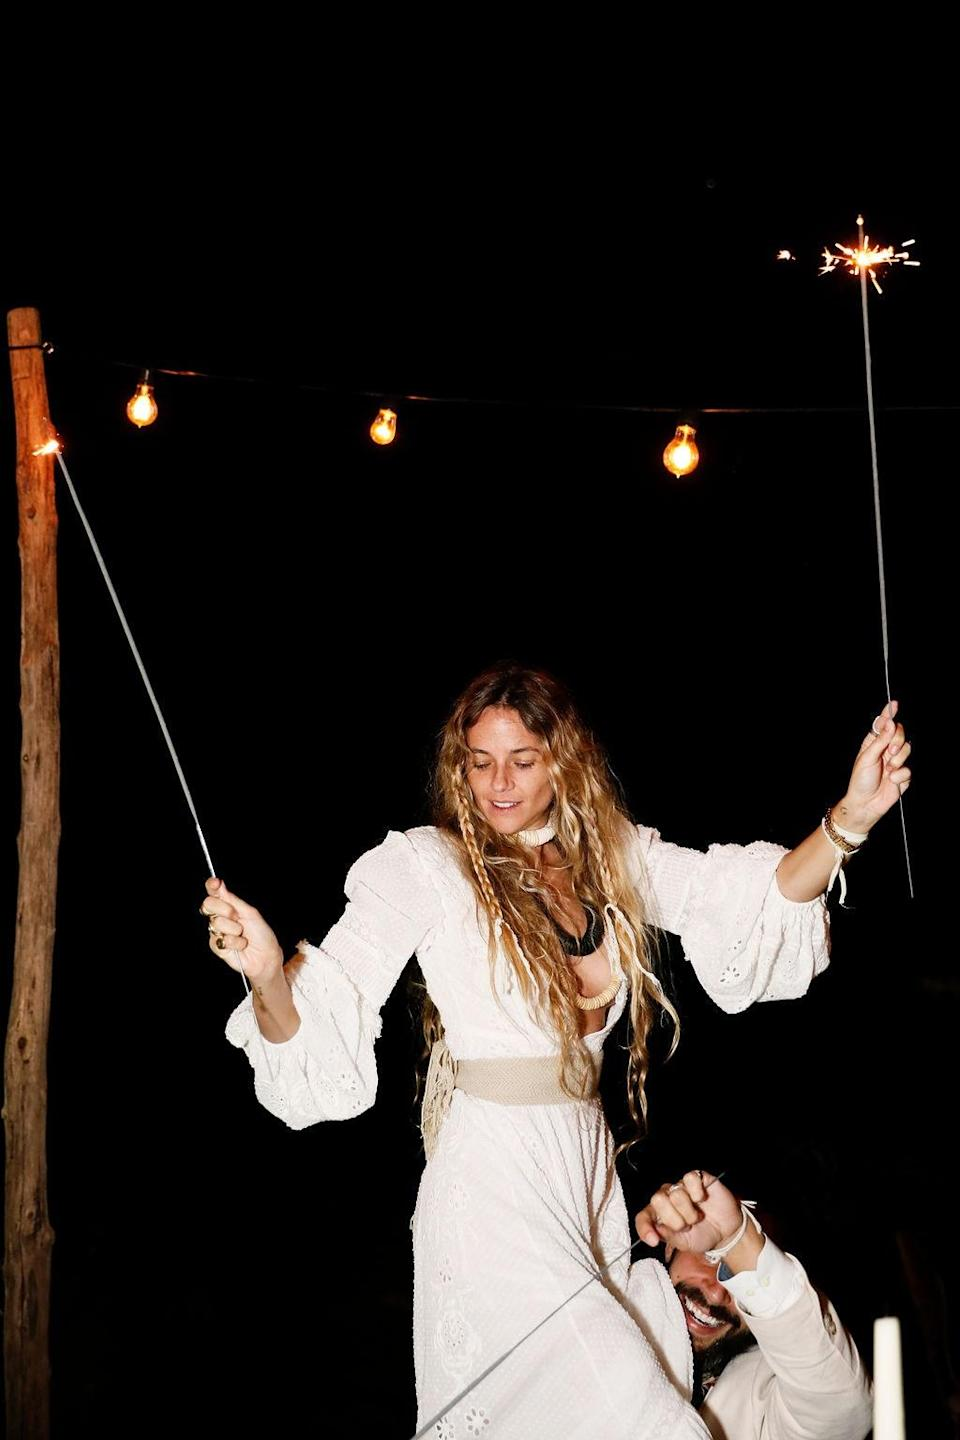 """""""Christina Coniglio and husband Adam Silverstein, dance with sparklers in hand,"""" Nicholas says. """"Taking in the magic and fun."""""""